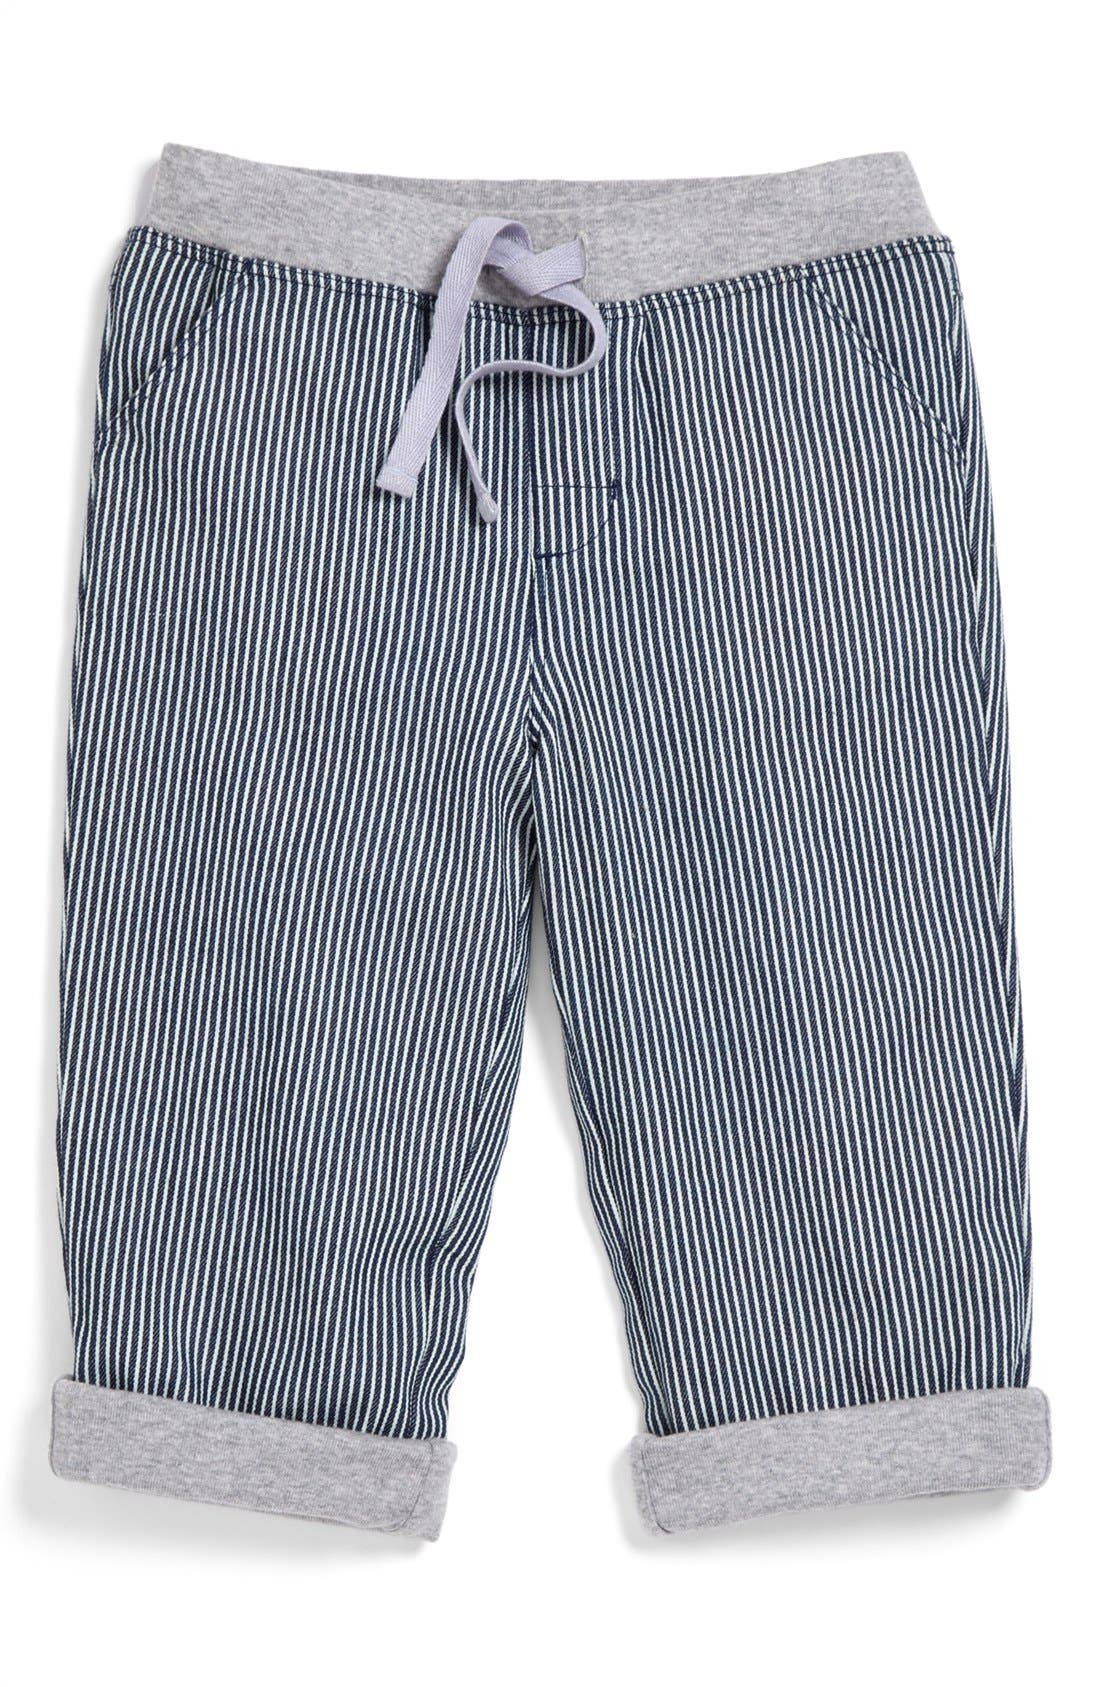 Main Image - Nordstrom Baby Striped Pants (Baby Boys)